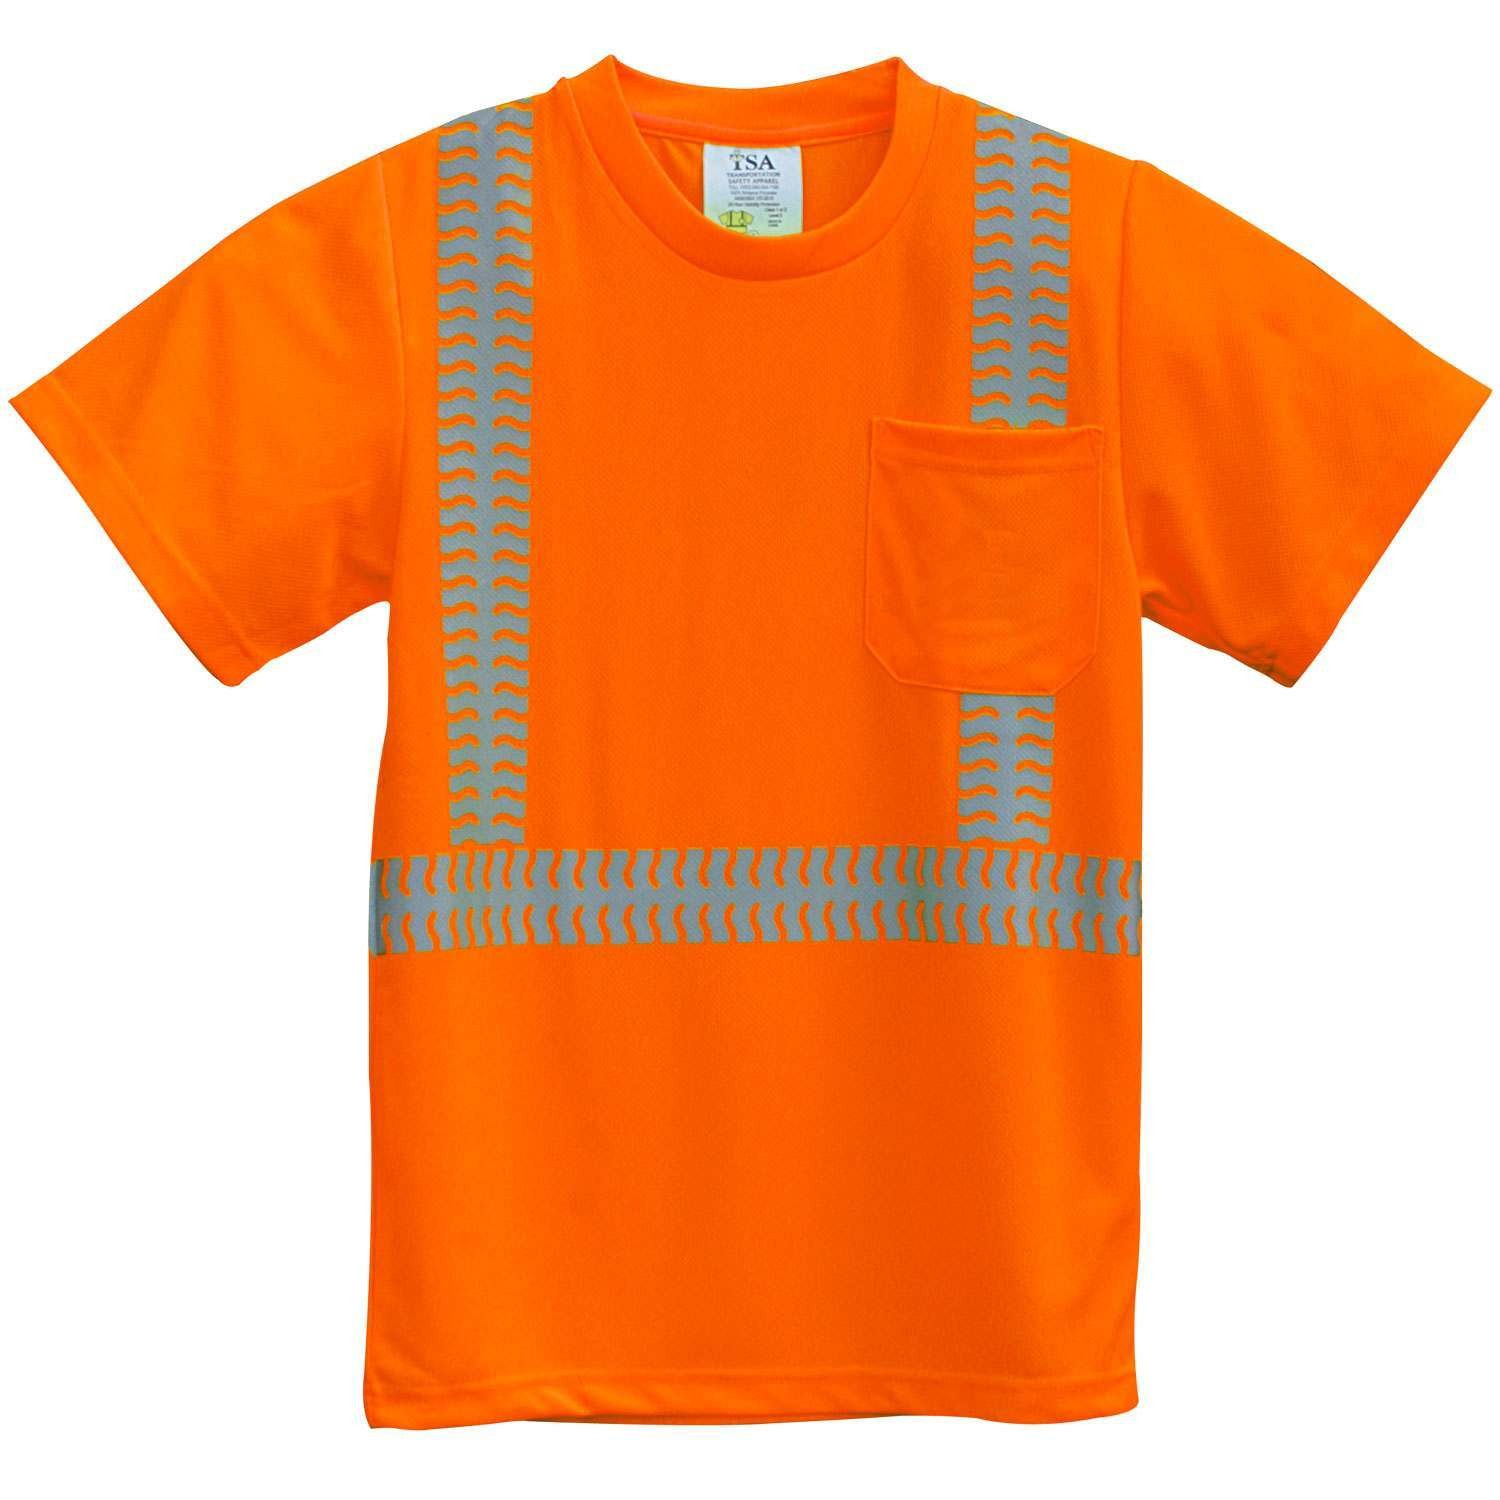 More views for High visibility safety t shirts